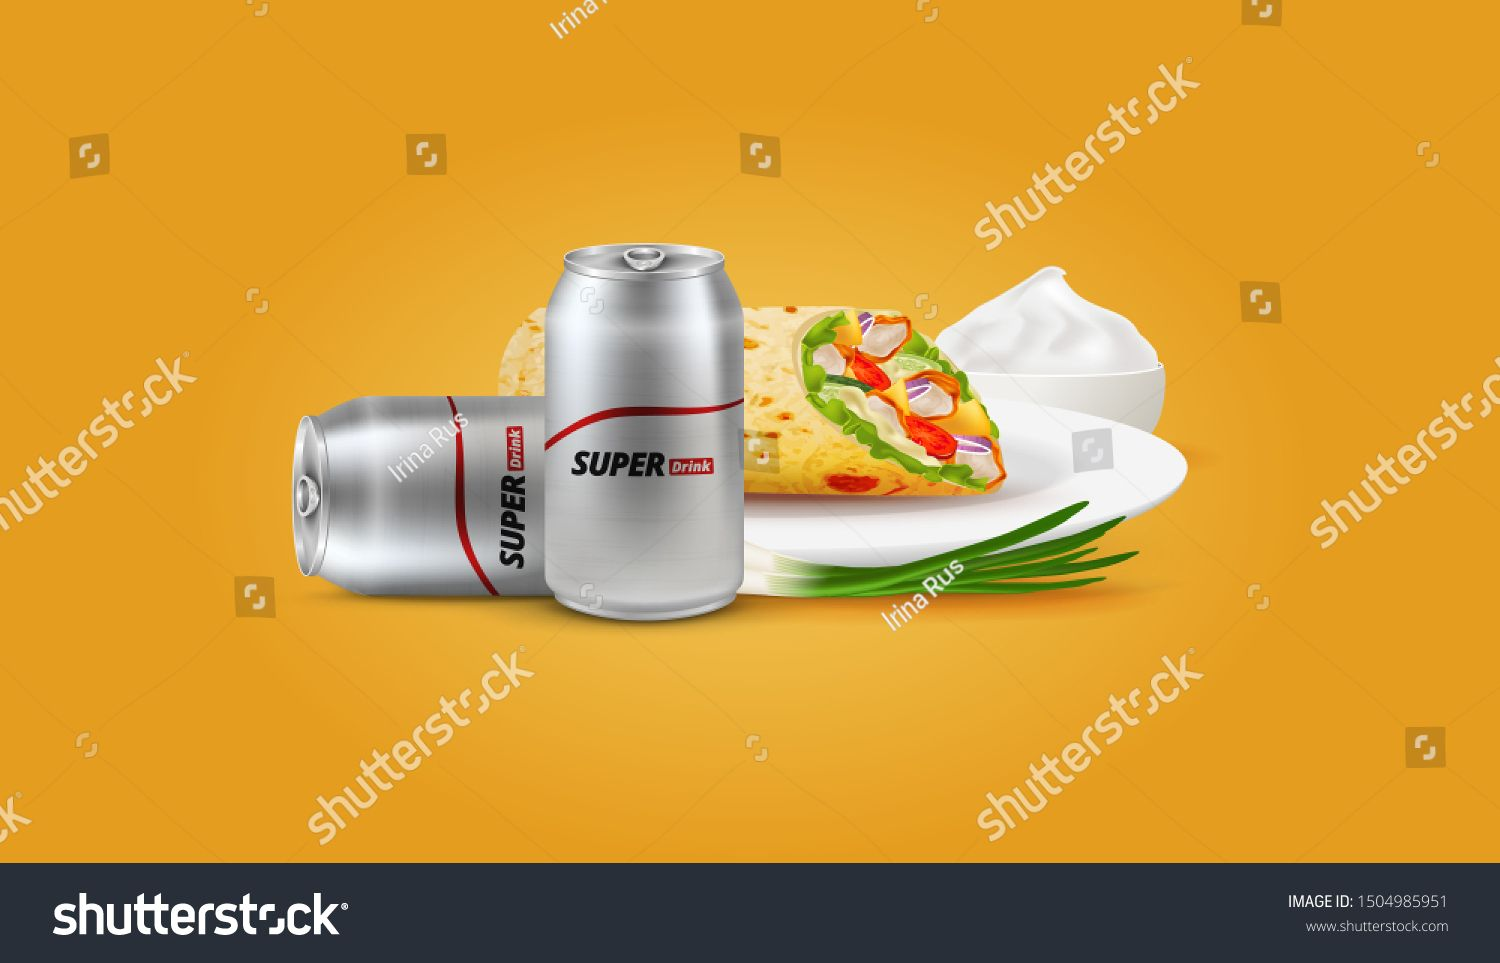 Shawarma and Drink. Can, Beer. Meat and Vegetables. Tacos. Arab food. Pita. Dish. Plate. Sour Cream, Mayonnaise. #Sponsored , #Ad, #Vegetables#Tacos#Arab#Meat